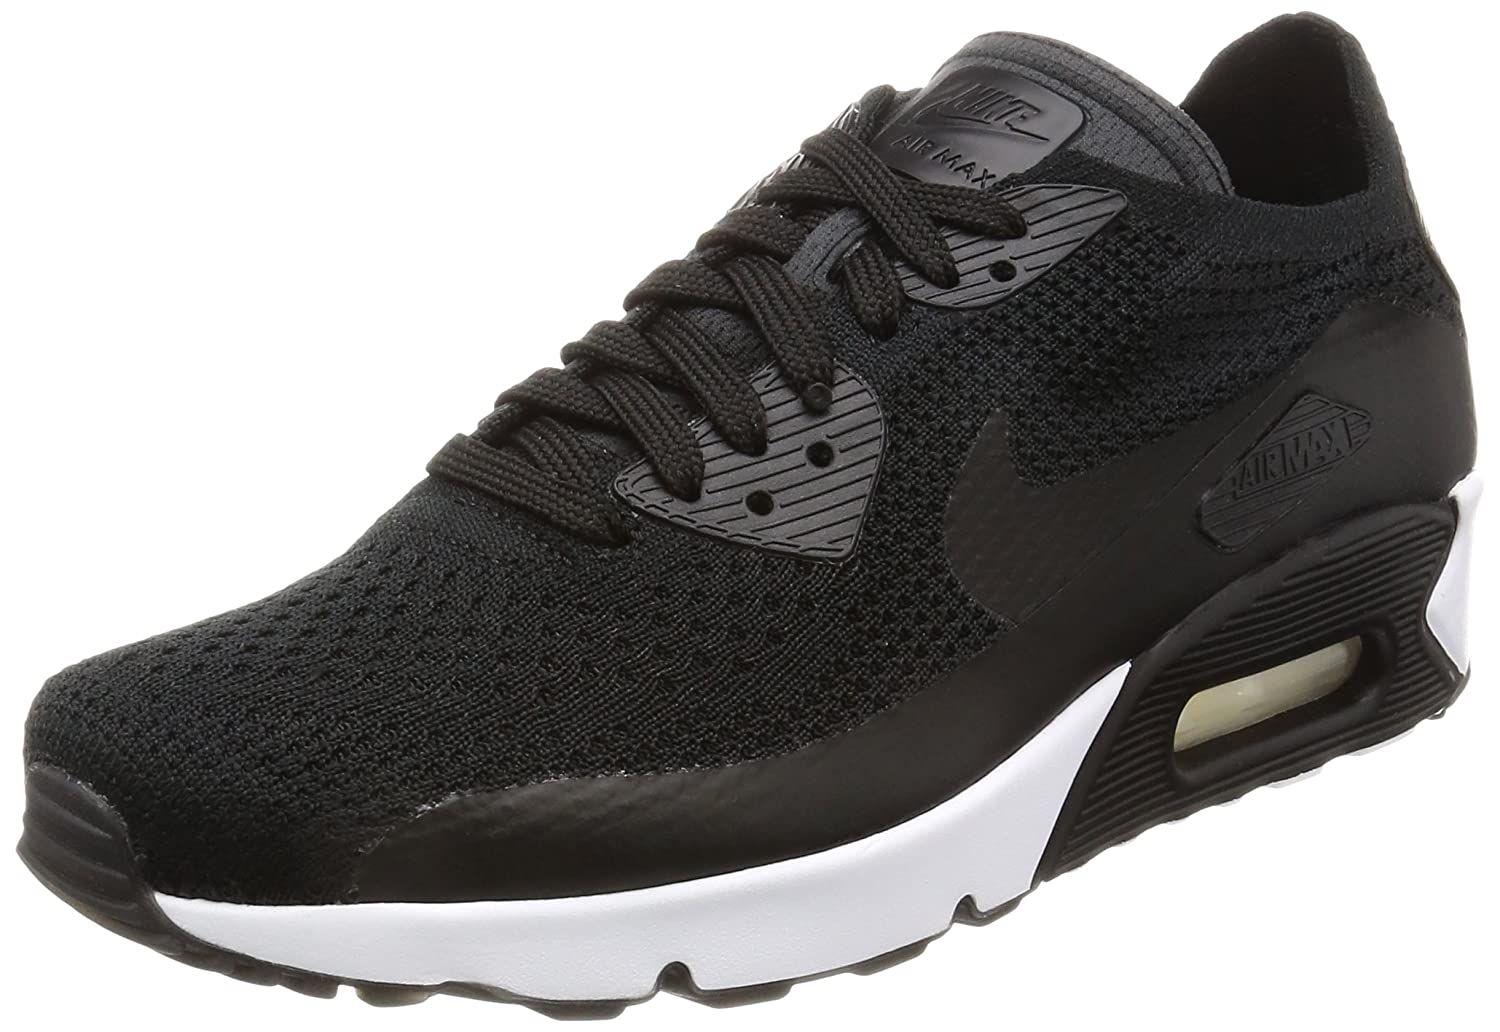 ae473eaaed Amazon.com  Nike Air Max 90 Ultra 2.0 Flyknit  Shoes